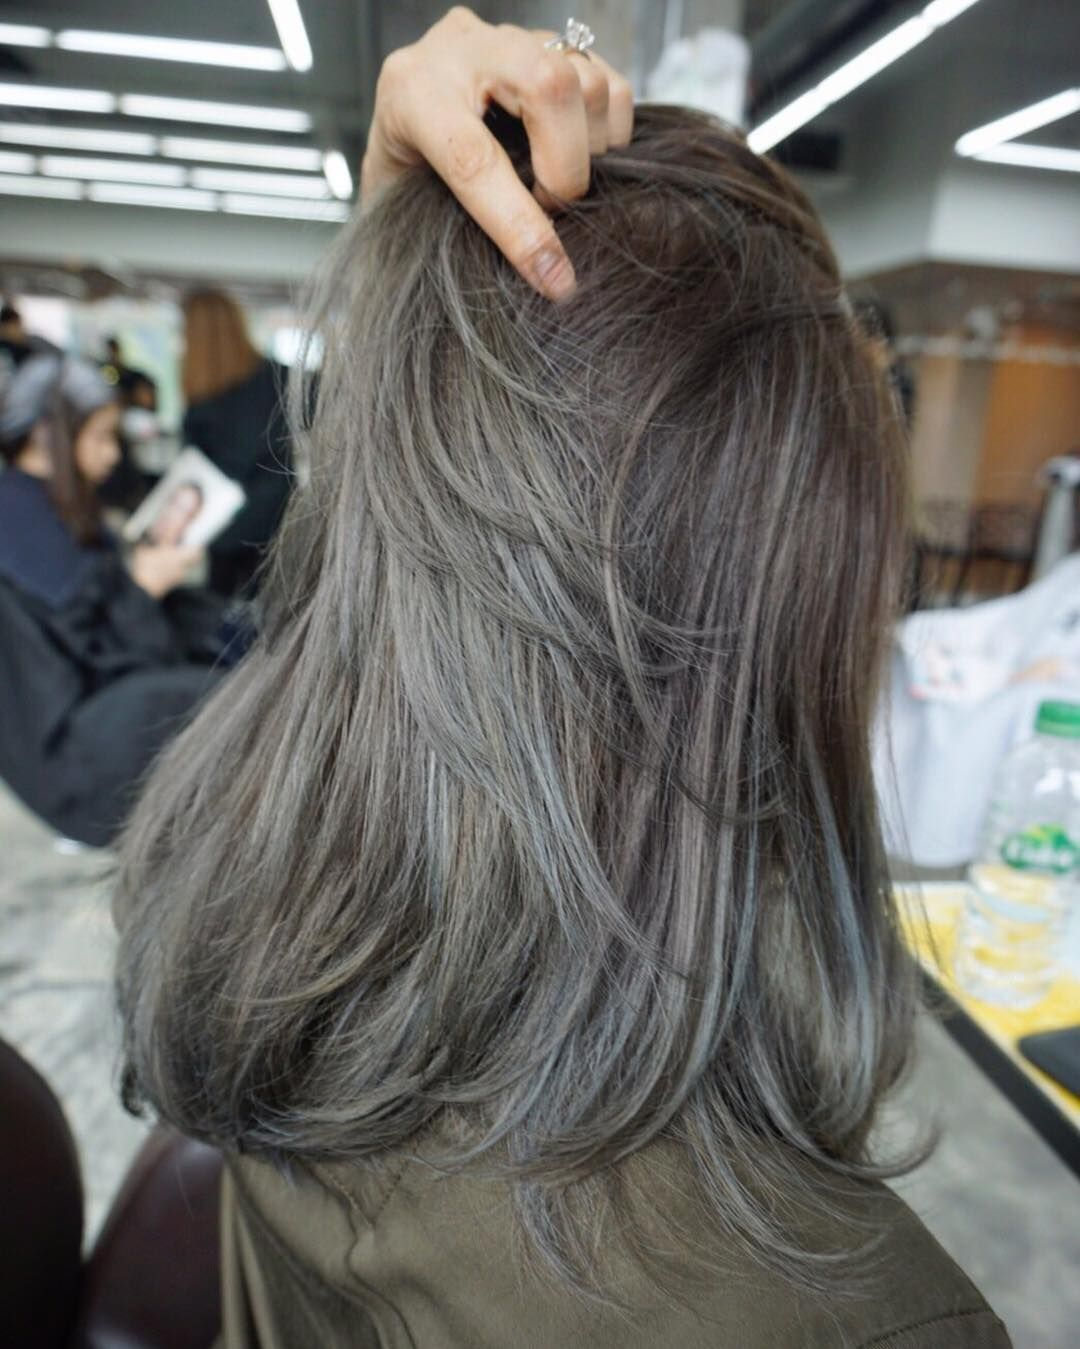 Cool Beige Grey Color Combo Hair Style Designed For This Customer At Number76 Kuala Lumpur Beige Hair Hair Styles Ash Hair Color